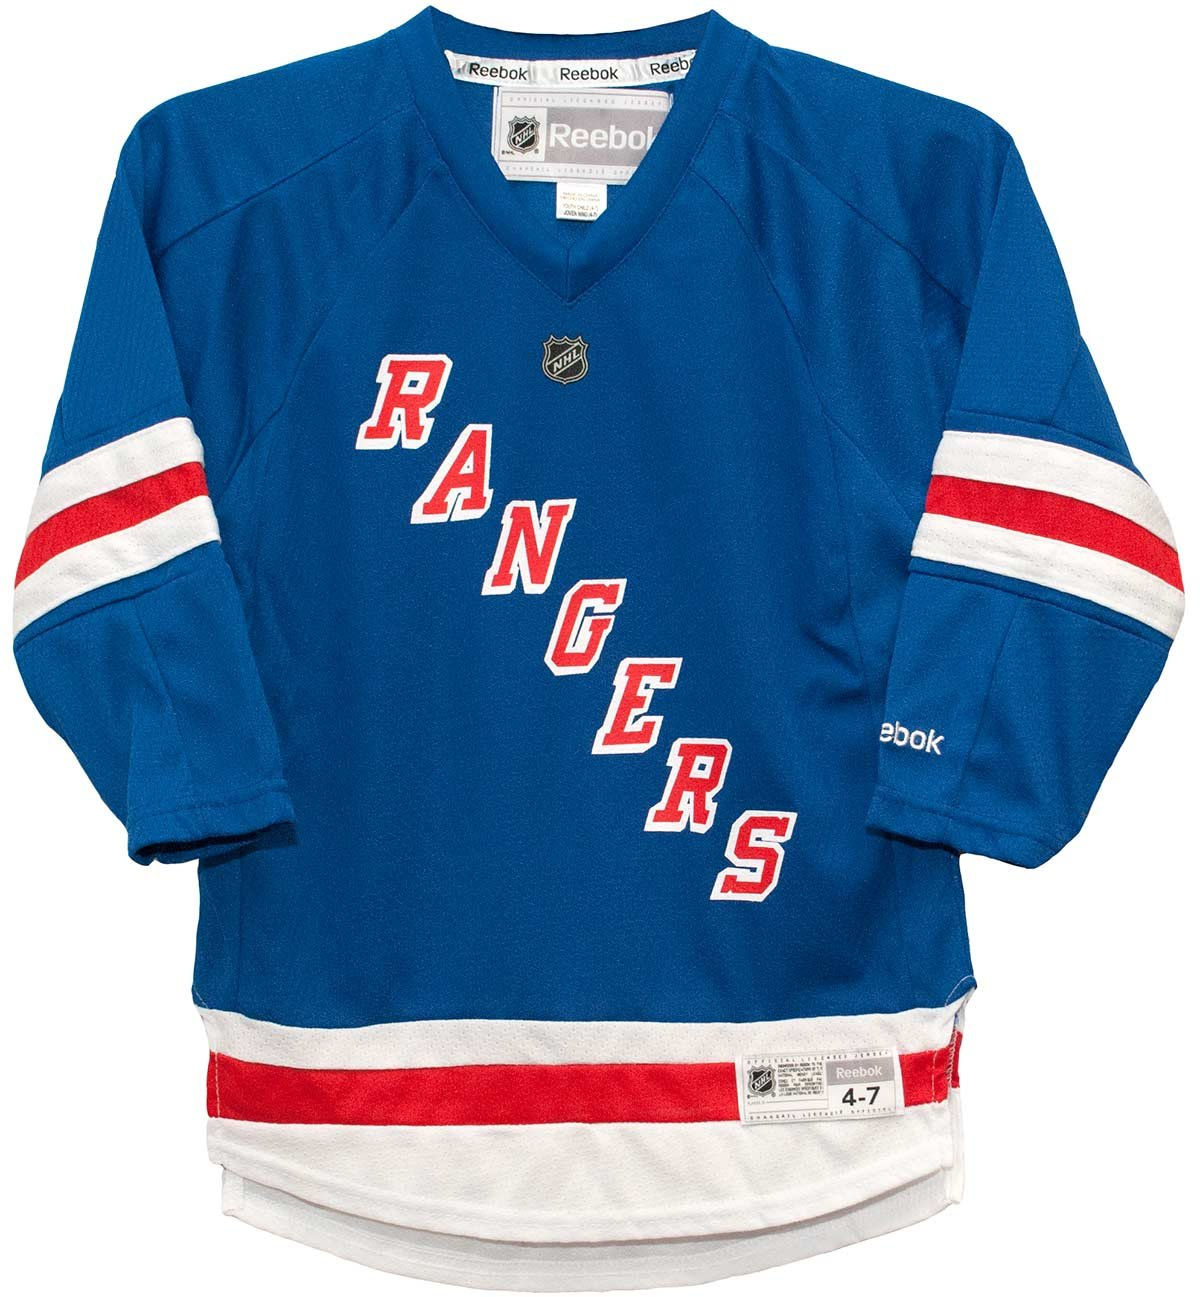 super popular ce1d6 52047 outlet New York Rangers Home Blue Replica Child 4-7 Jersey ...